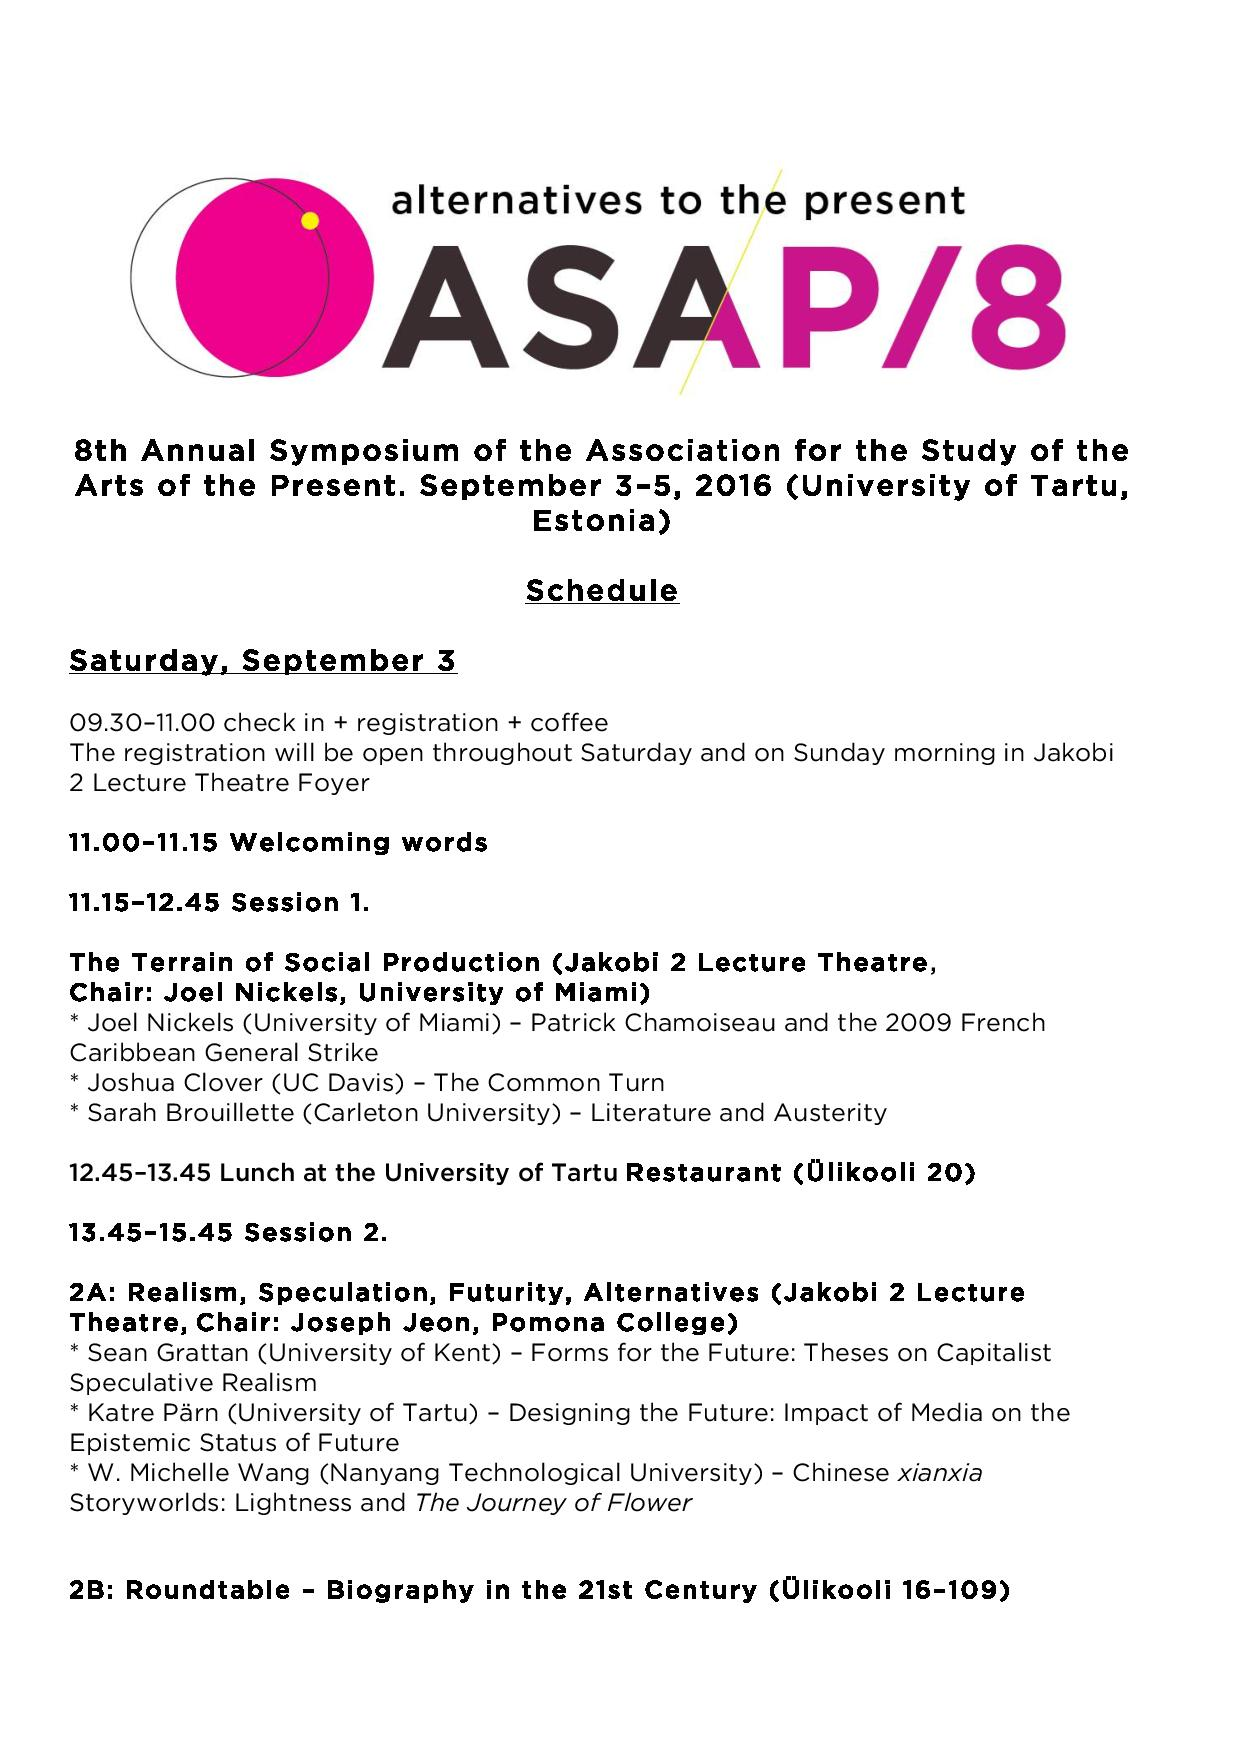 ASAP/8: Alternatives to the Present